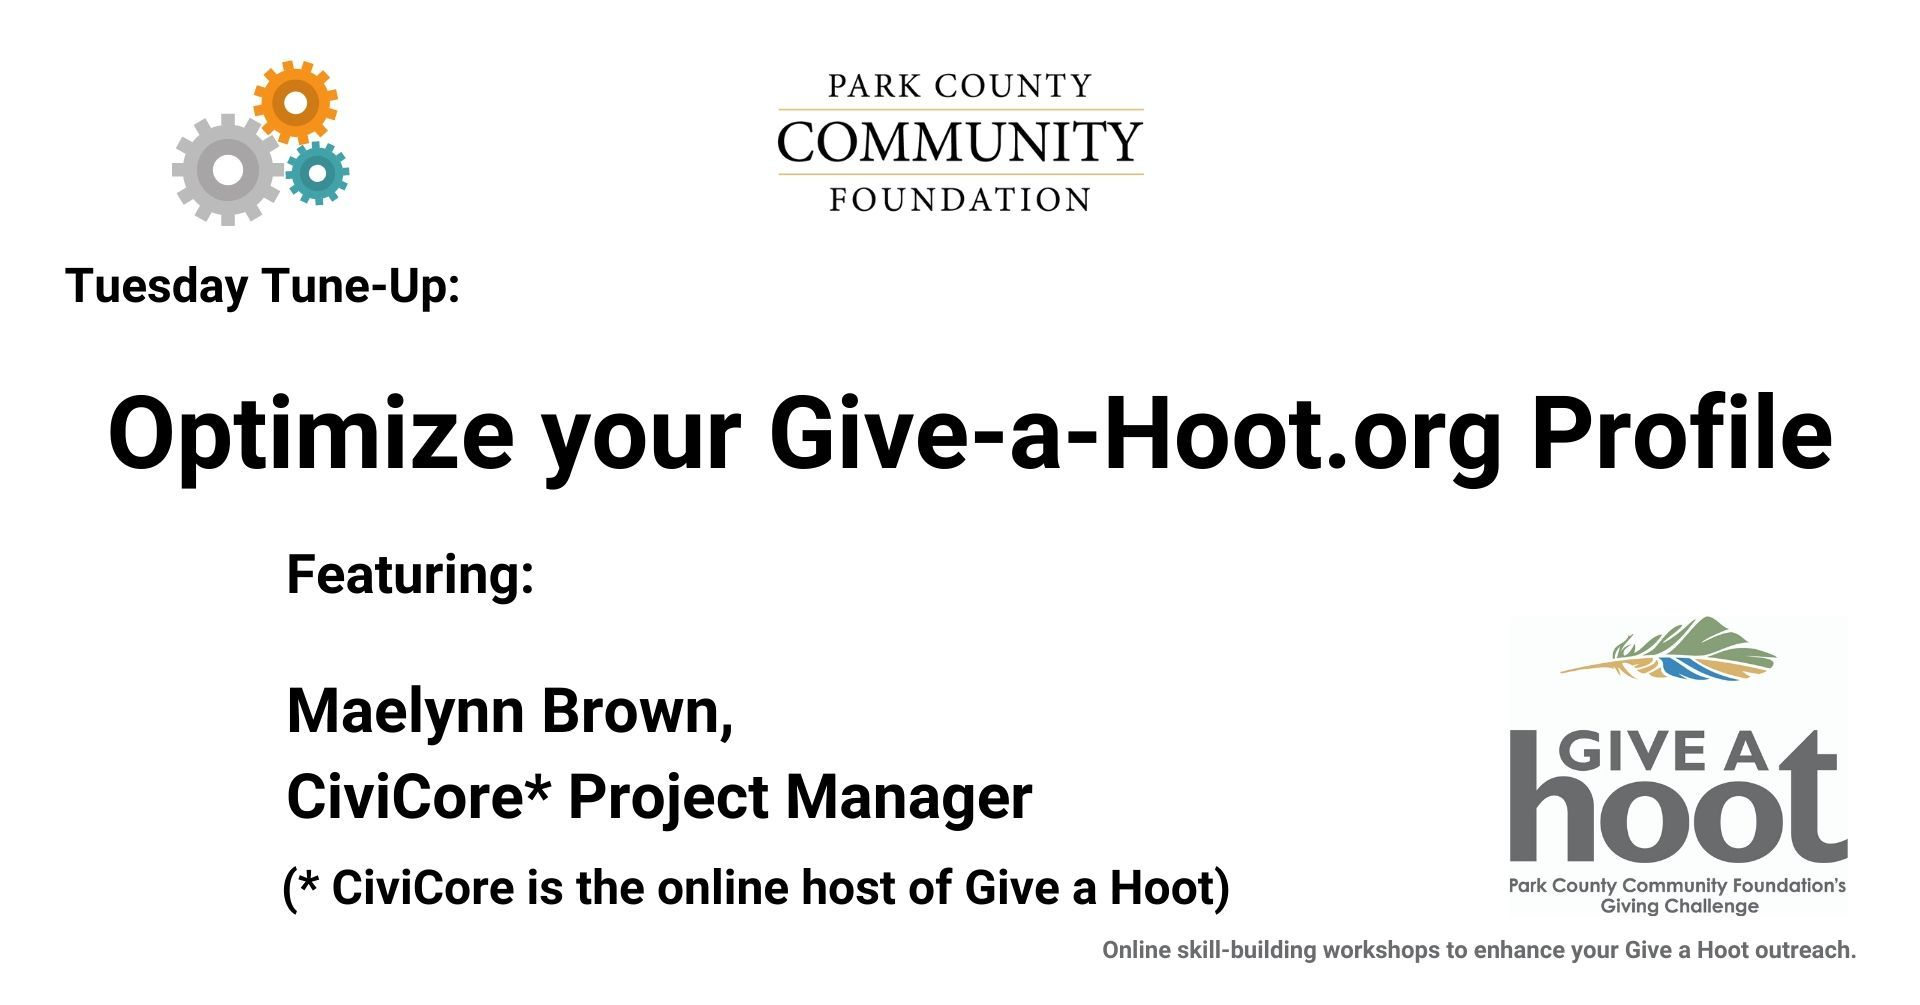 Optimize Your Give-a-Hoot.org Profile